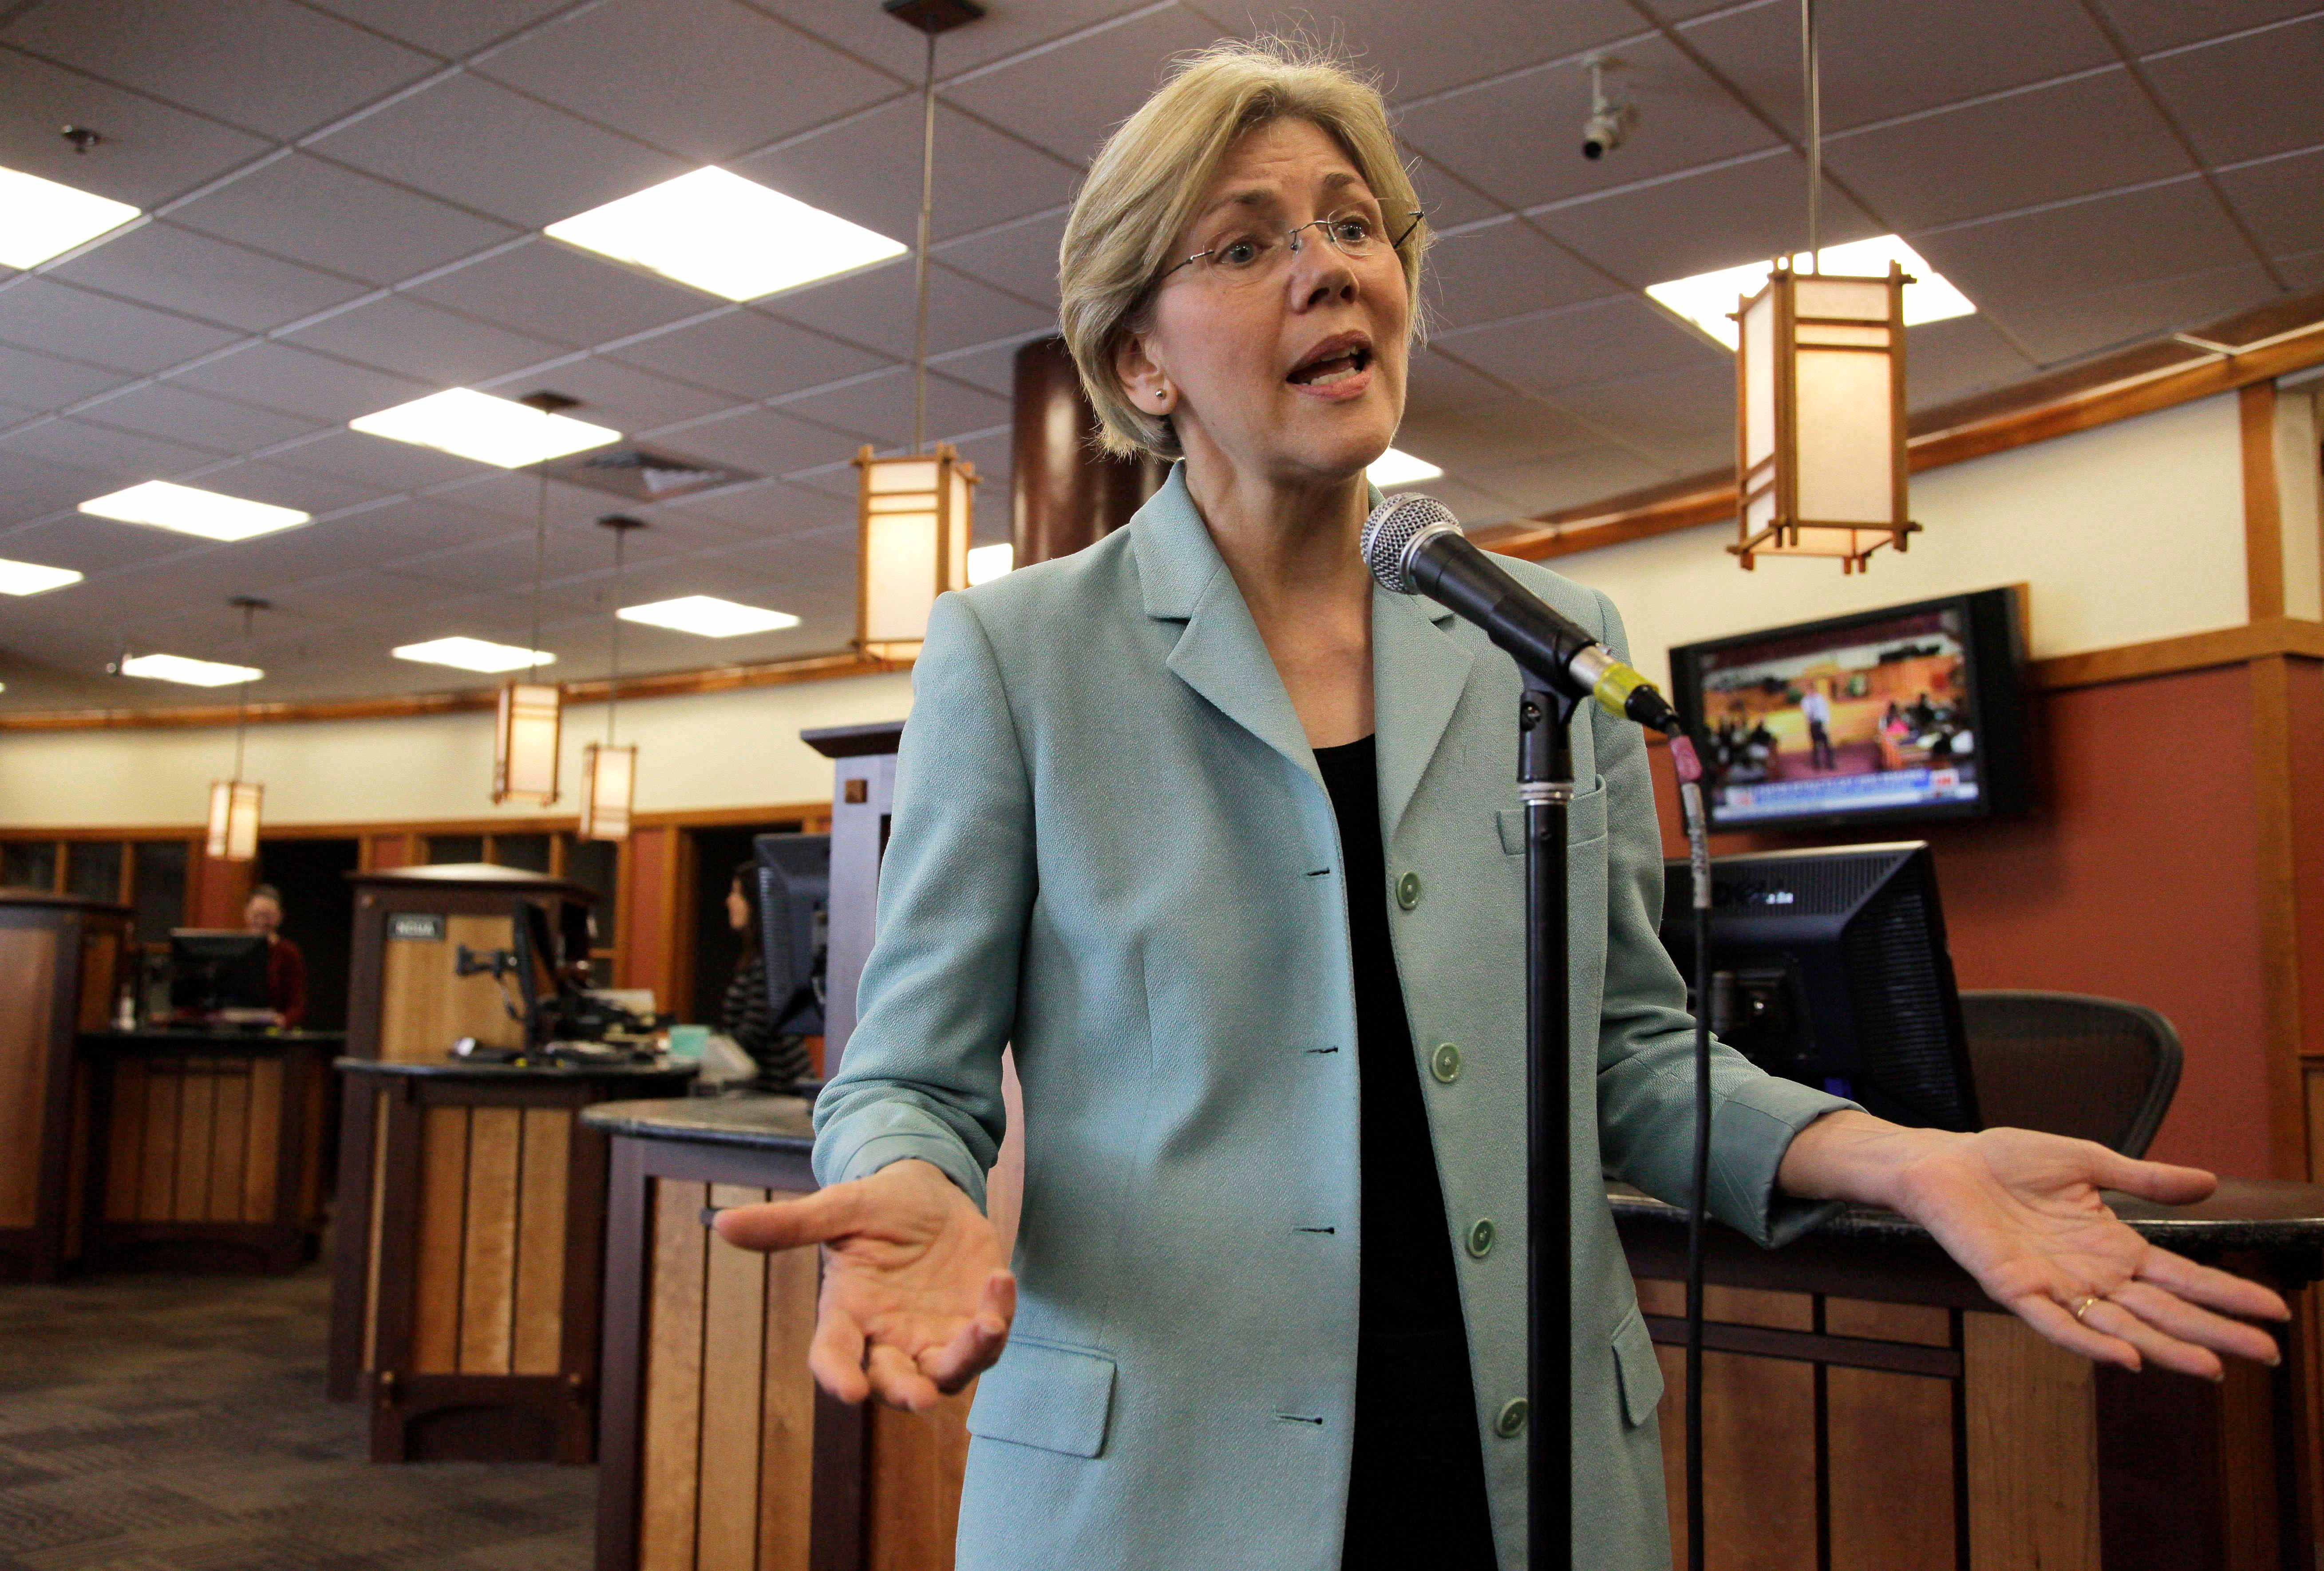 """In this May 2, 2012 photo, Democratic candidate for the U.S. Senate, Elizabeth Warren, speaks to reporters during a news conference while campaigning at Liberty Bay Credit Union headquarters in Braintree, Mass. Warren addressed questions on her claim of Native American heritage. Warren, a Harvard Law School professor who is running in Massachusetts against Republican incumbent Scott Brown, was listed as Native American in several law school directories. Warren has said that her """"family lore"""" described Indian ancestors, and the New England Genealogy Association said it found indications that Warren had a Cherokee great-great-great grandmother, which would make her 1/32 Indian. (AP Photo/Steven Senne)"""